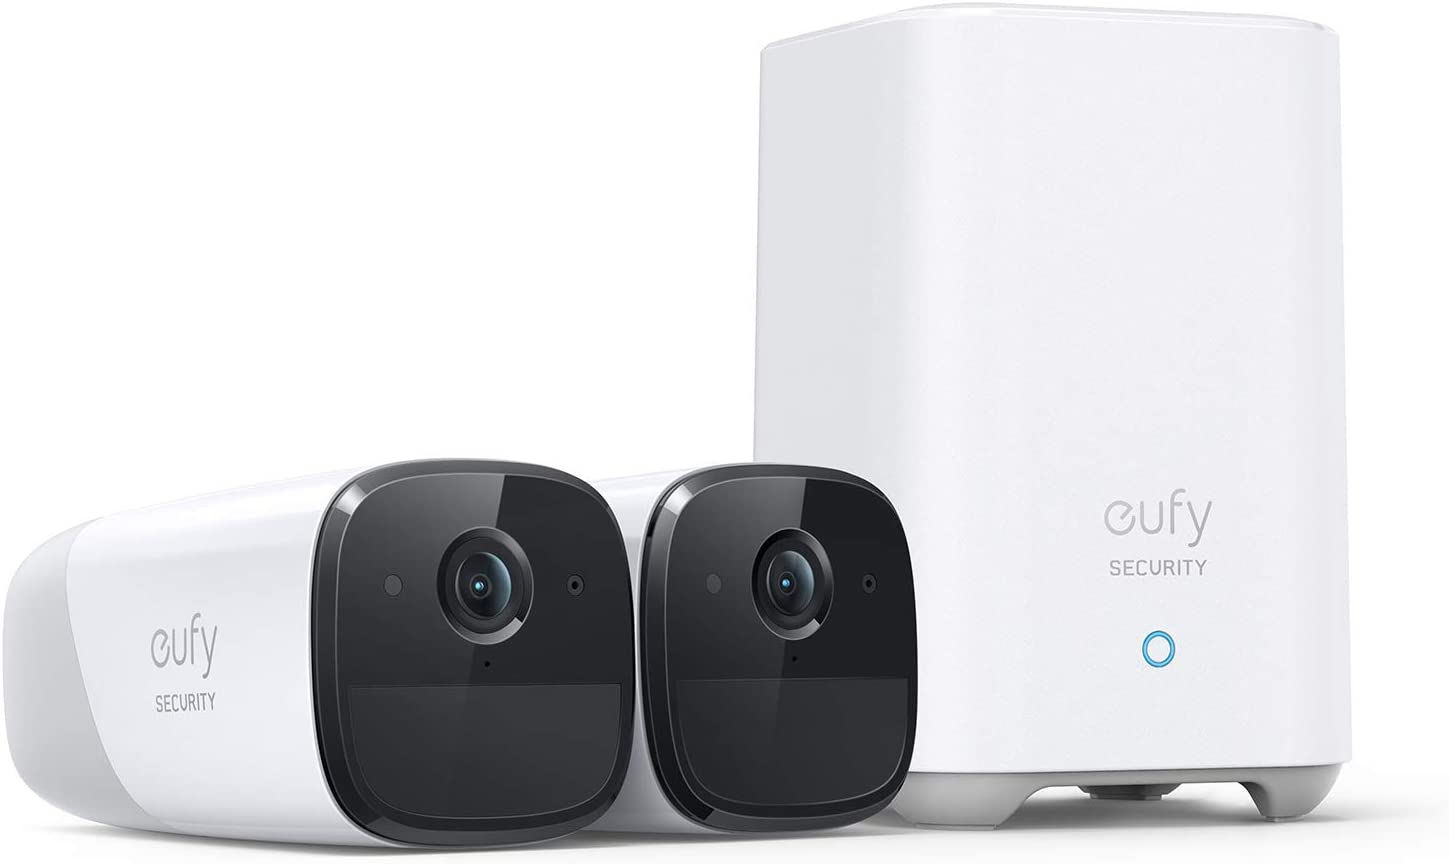 NEW before selling ☆ eufy Security eufyCam 2 Gifts Pro Home Camera Syste Wireless